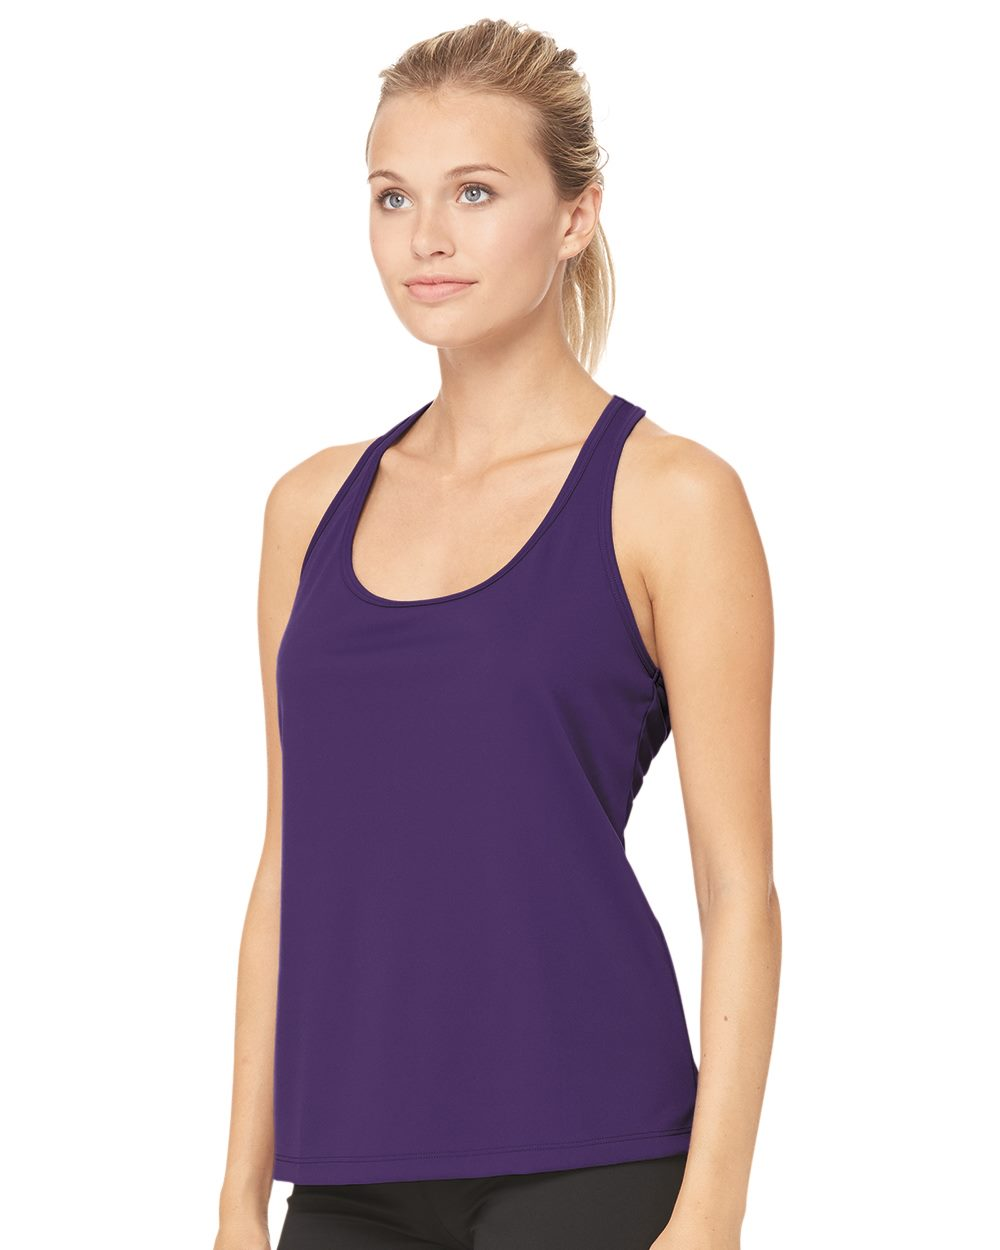 Alo W2079 - Ladies' Performance Racerback Tank